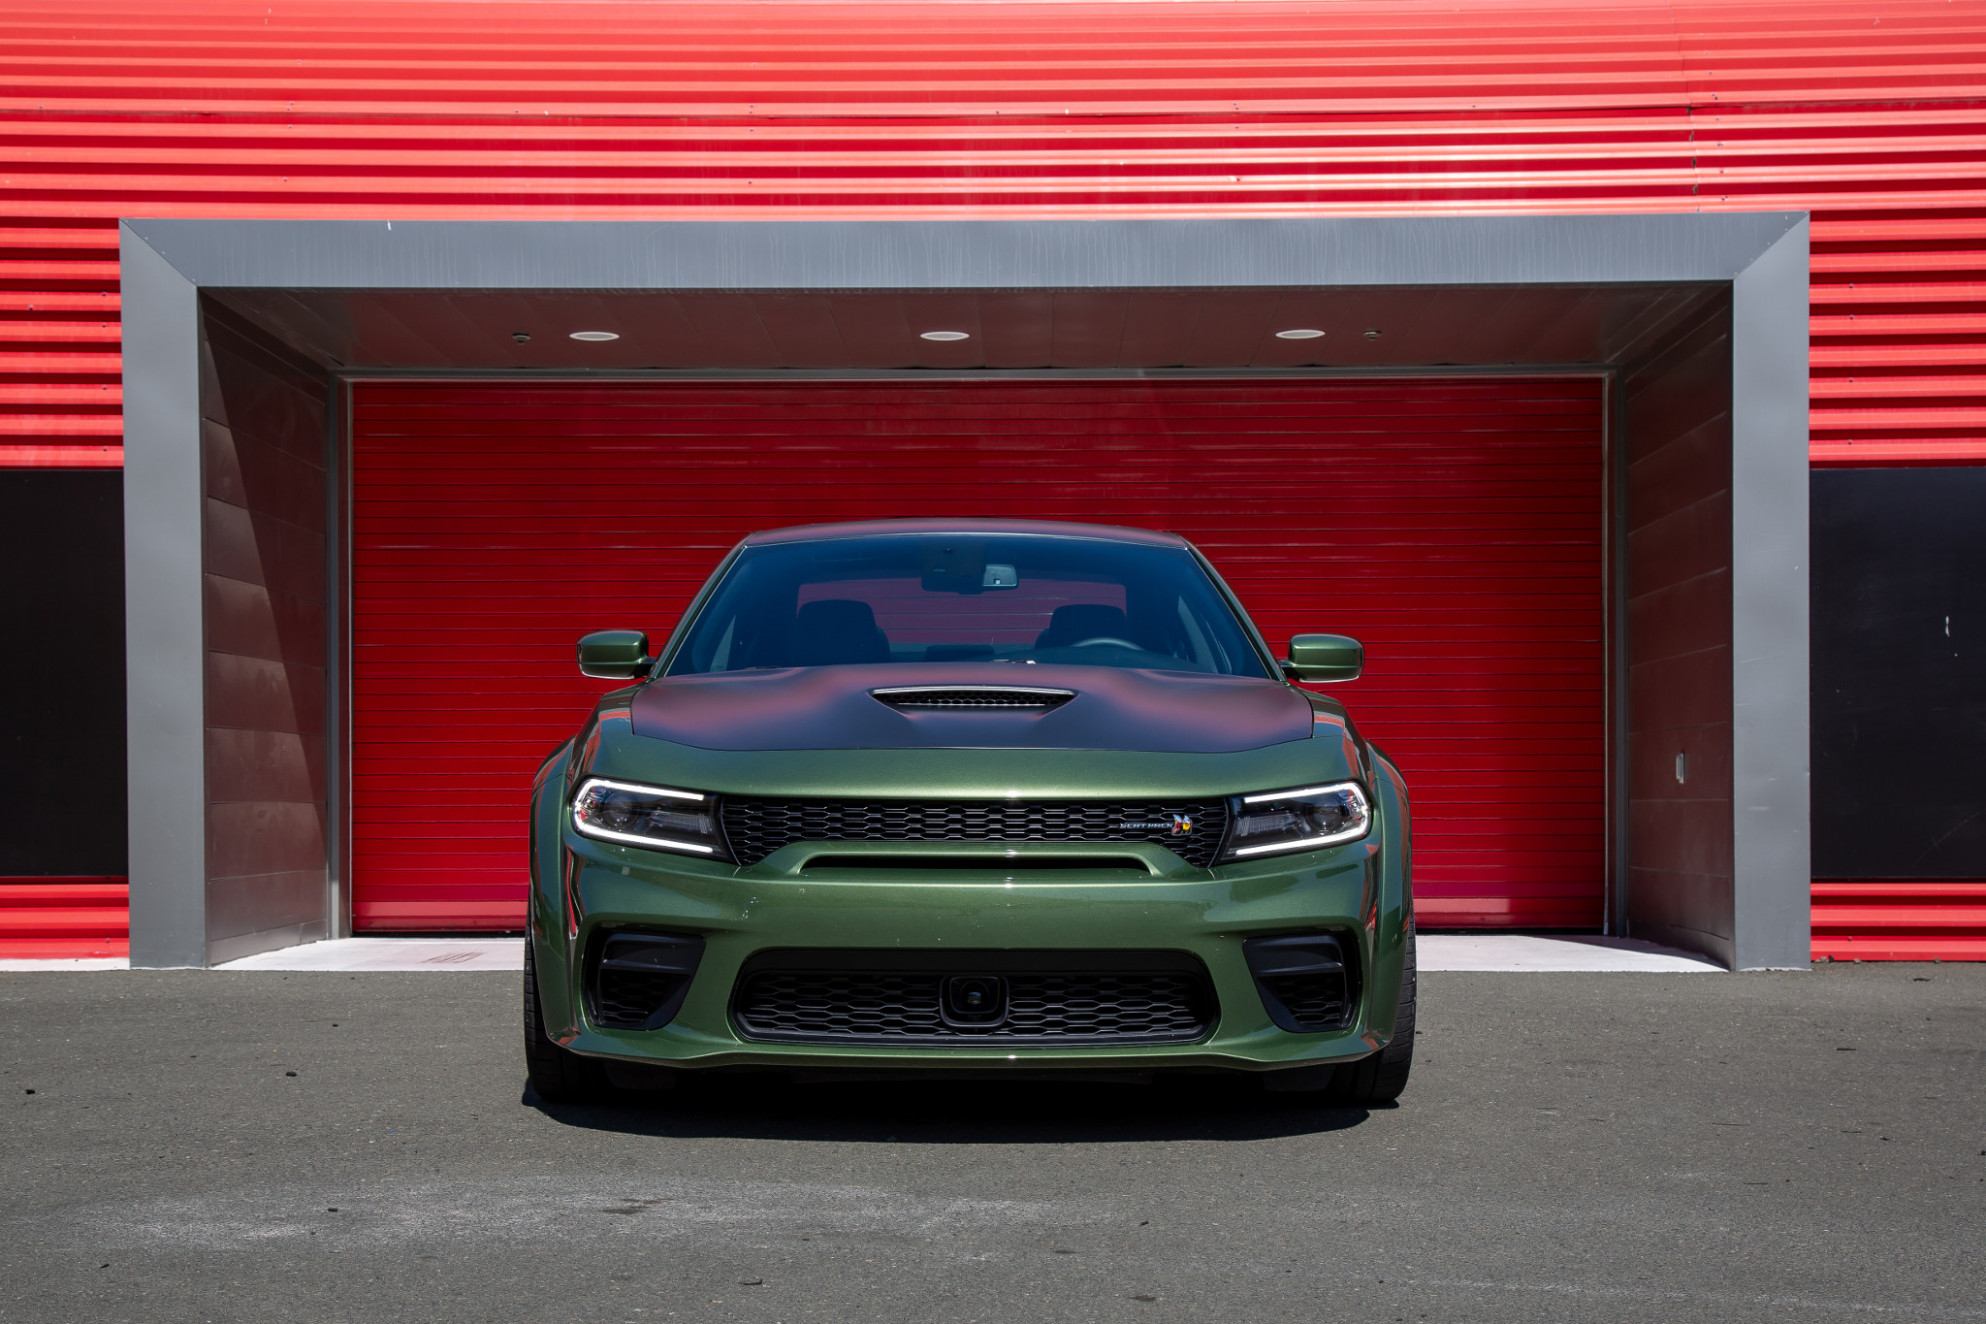 Top 11 Reviews and Videos of the Week: 11 Dodge Charger ..